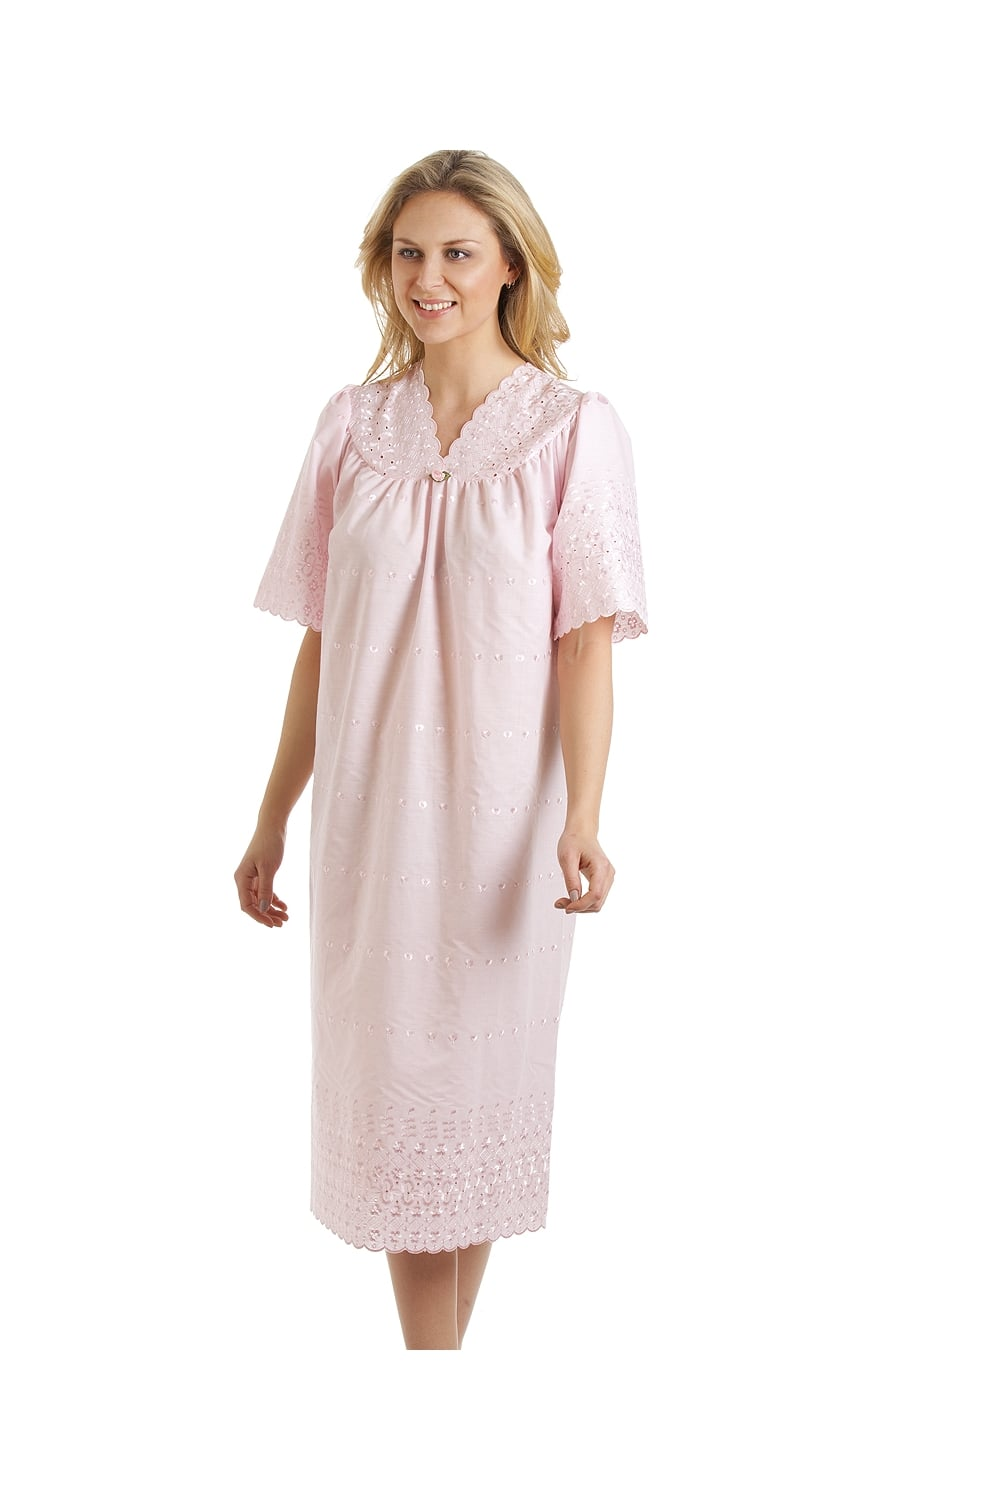 Classic short sleeved pink embroidered nightdress